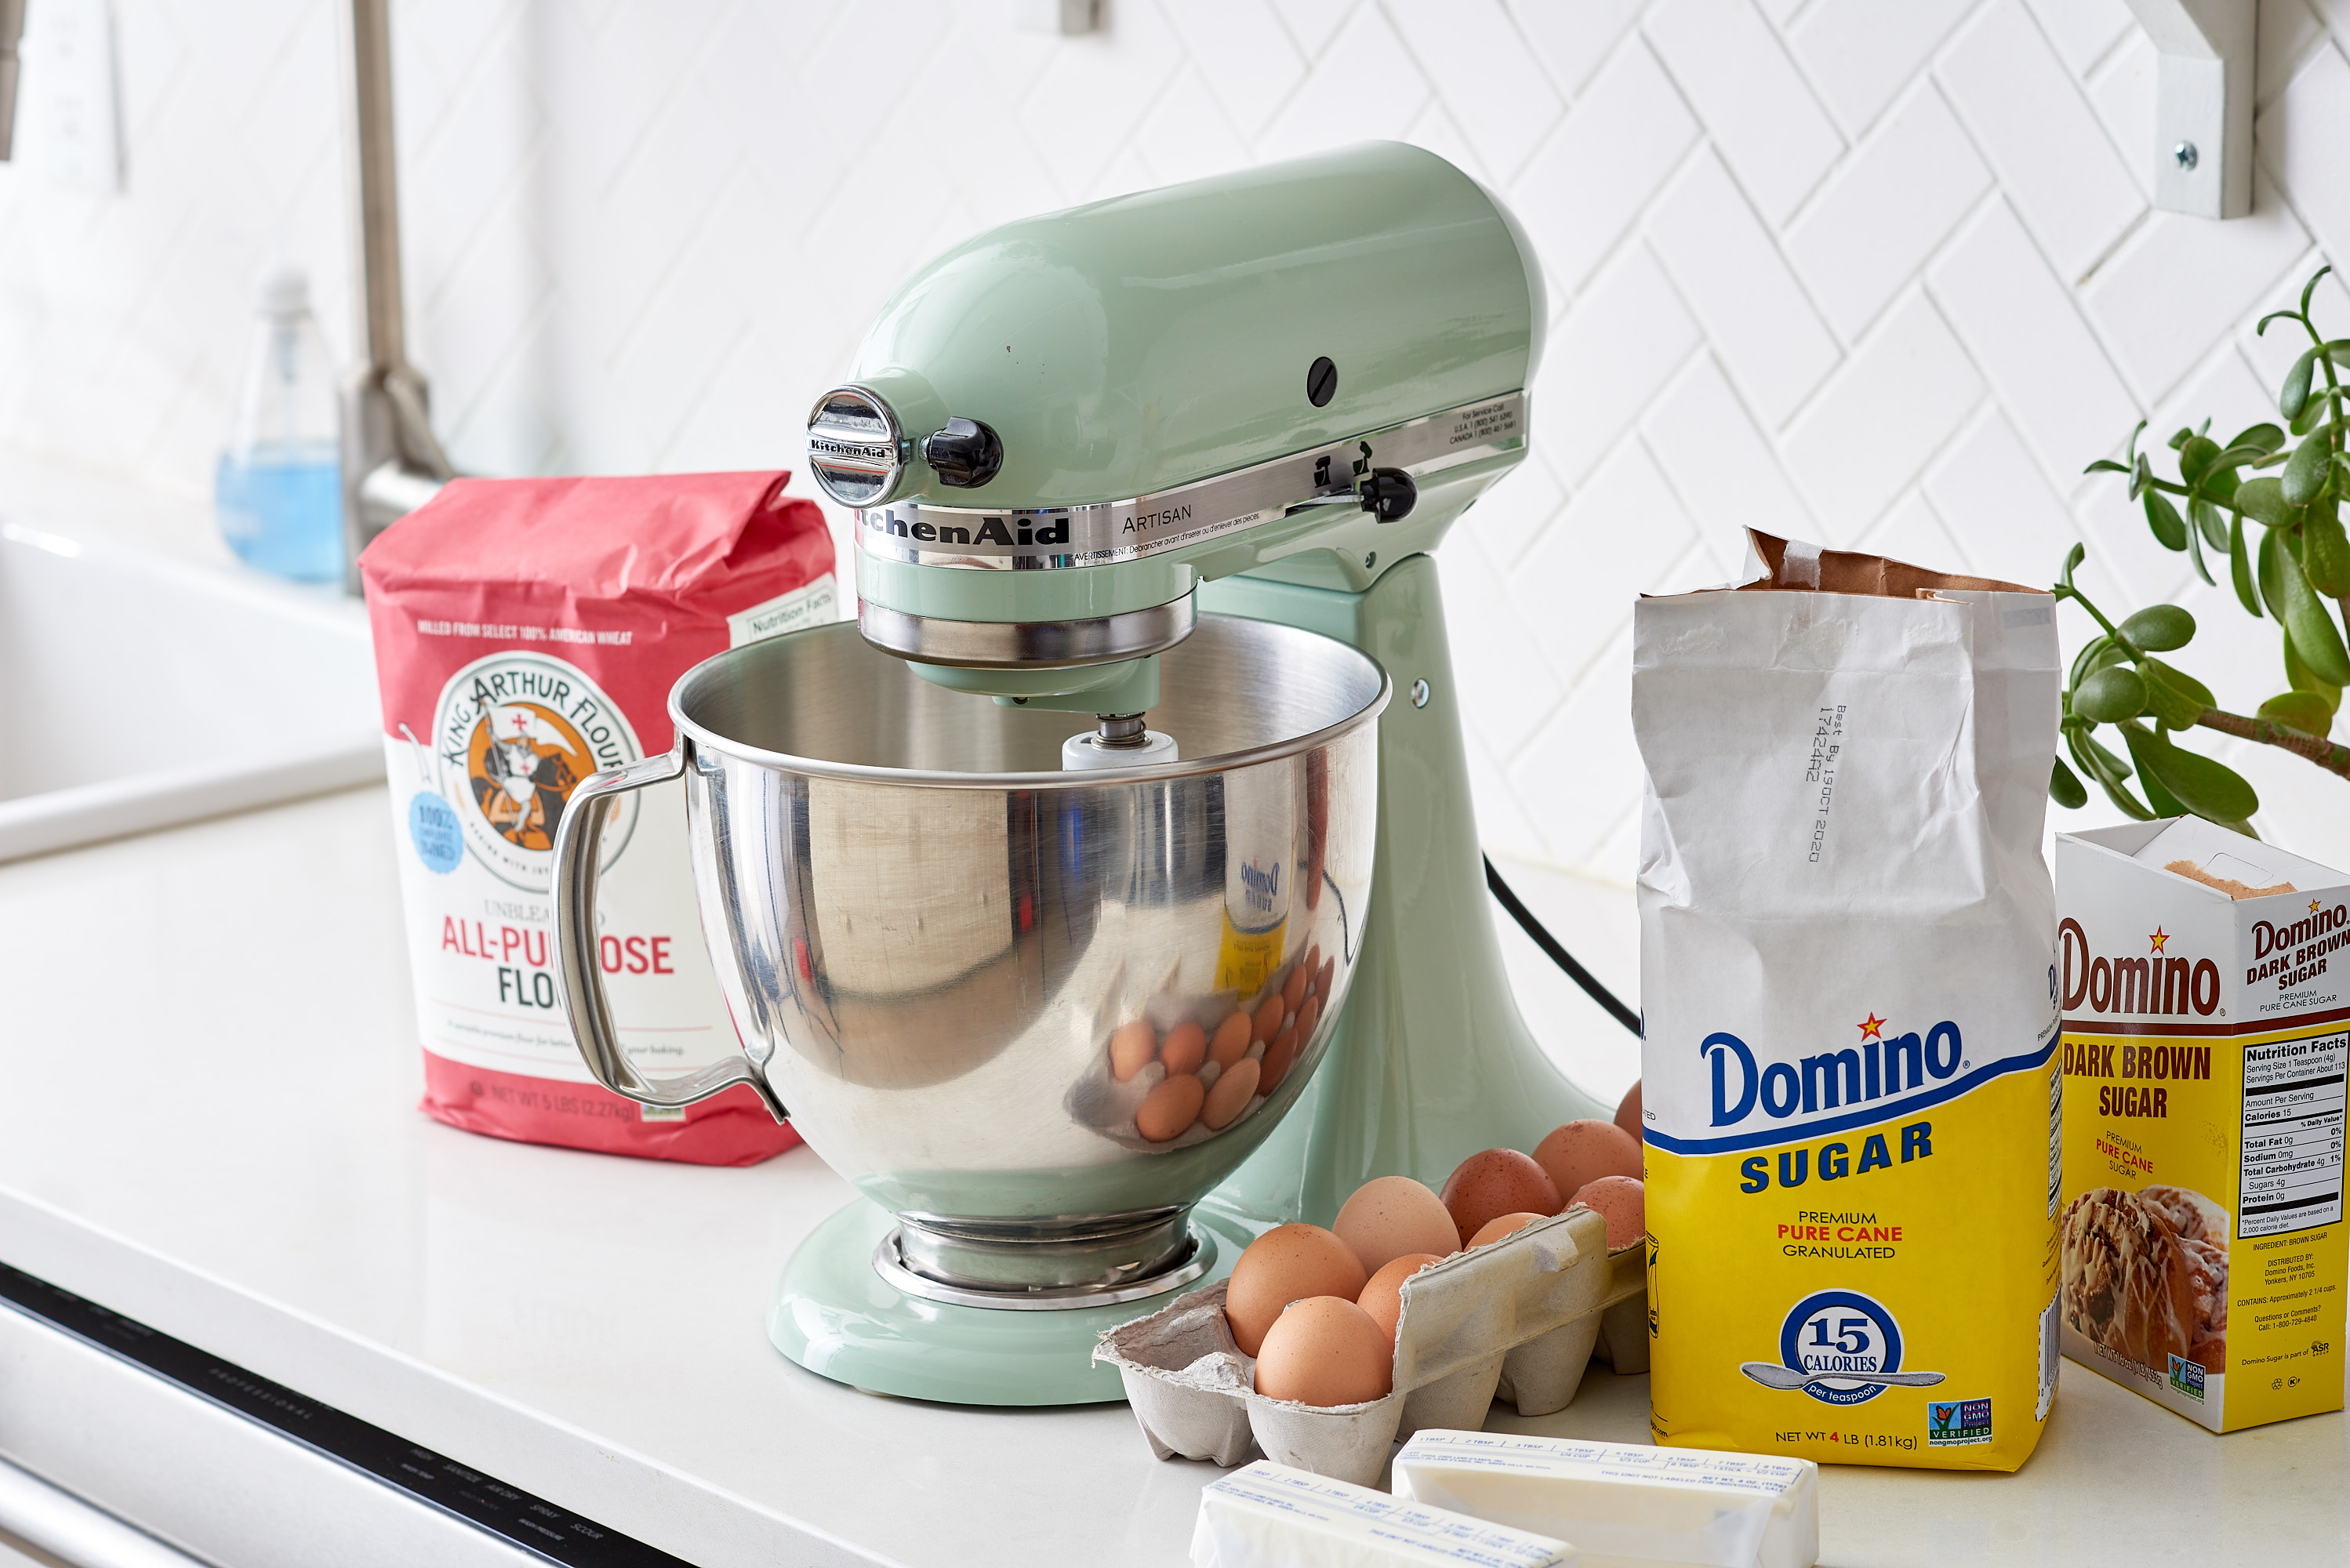 Best Stand Mixer 2020 How I Fell Out of Love with My Stand Mixer | Kitchn